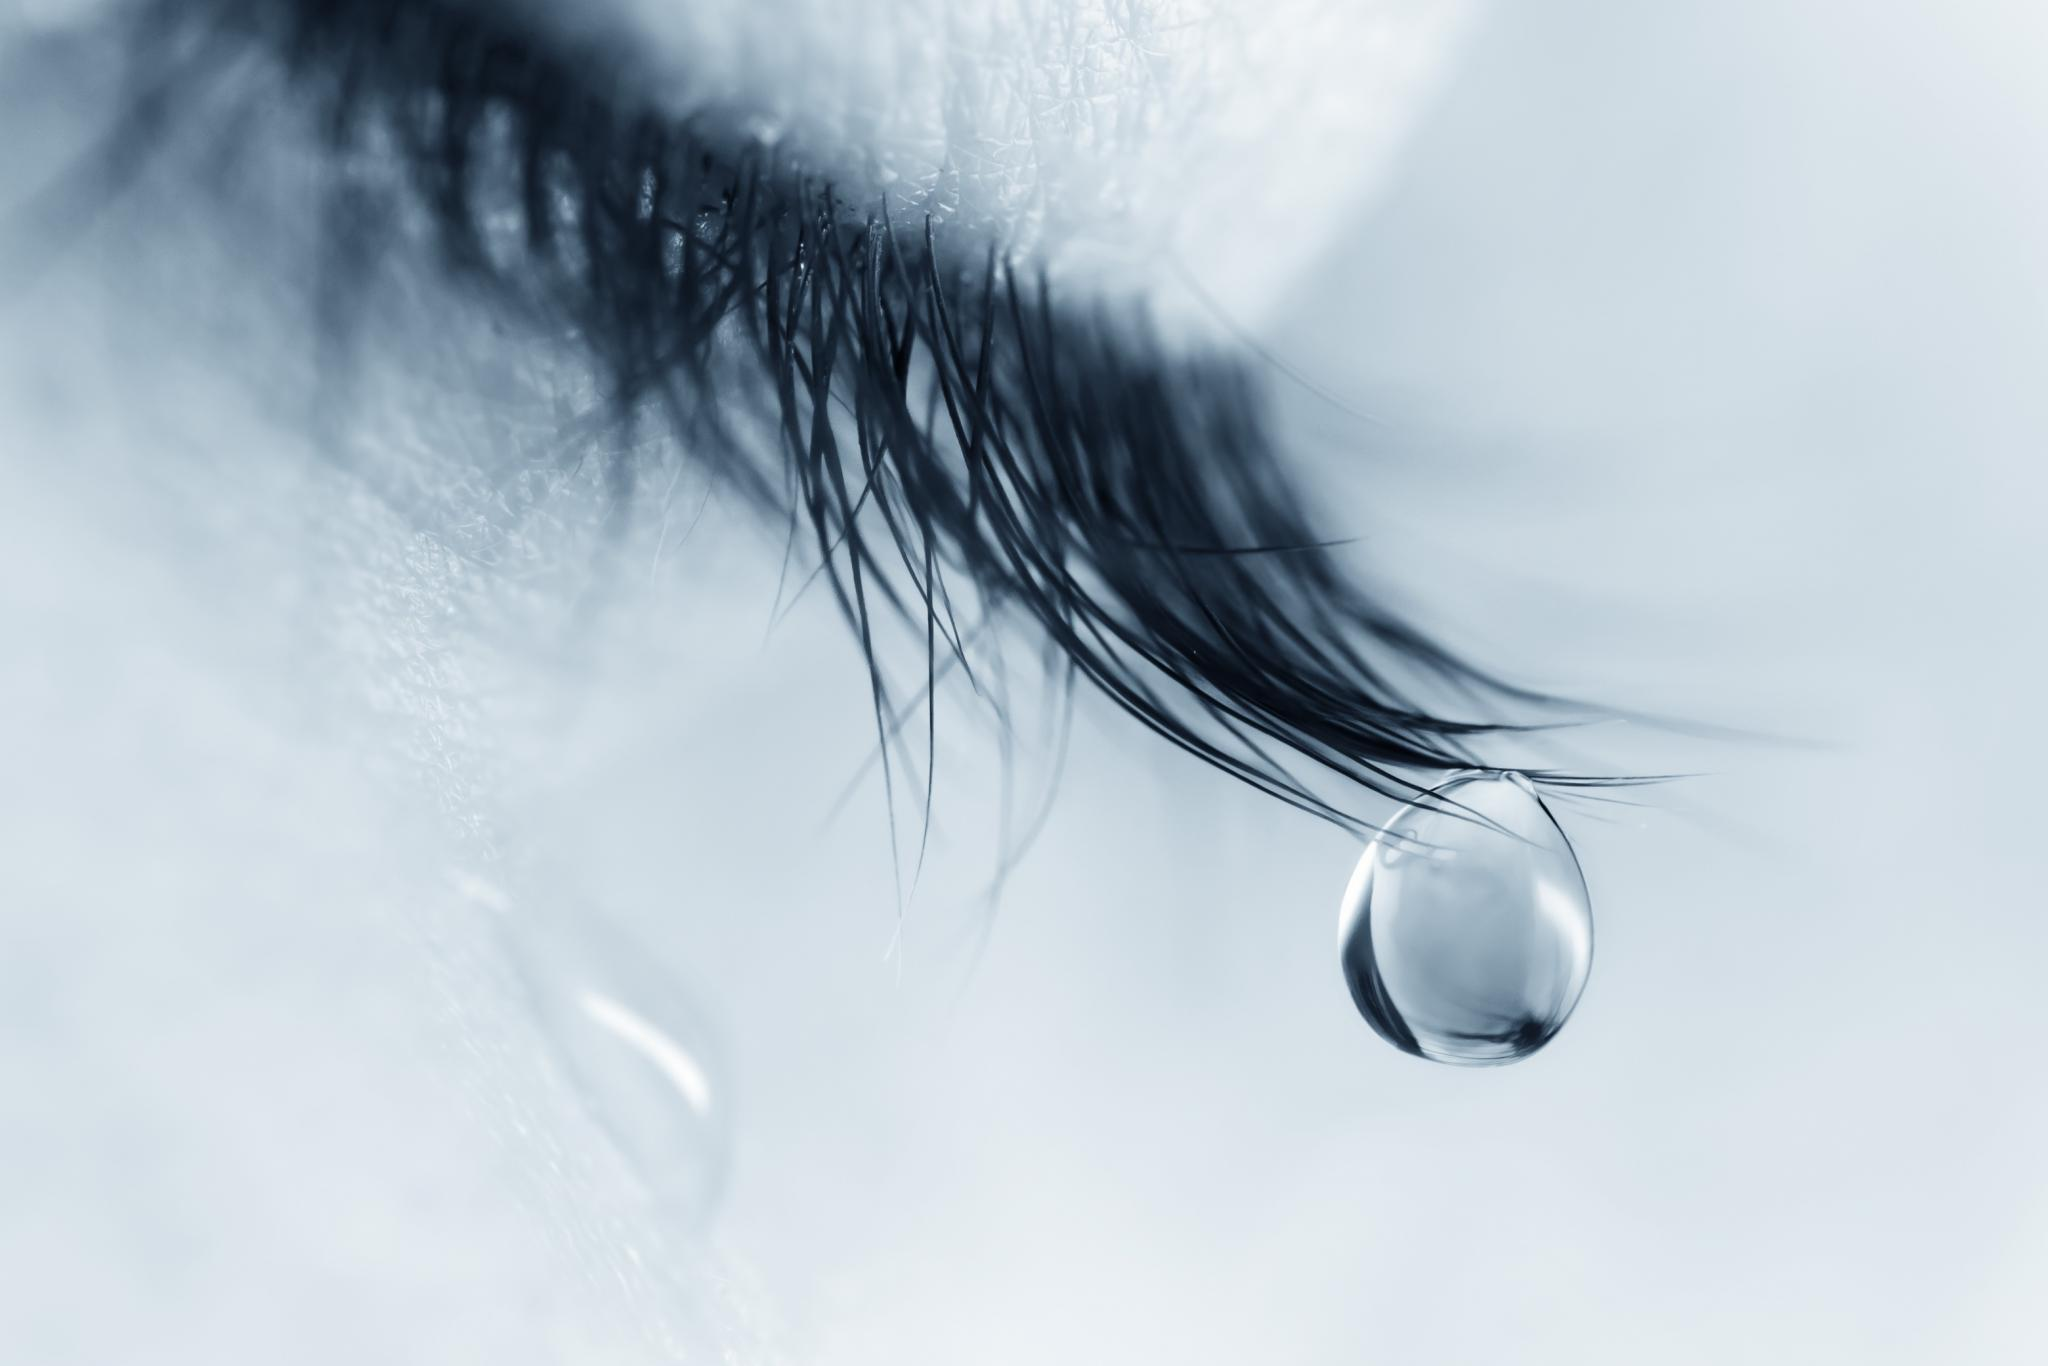 Eye with a single tear drop.